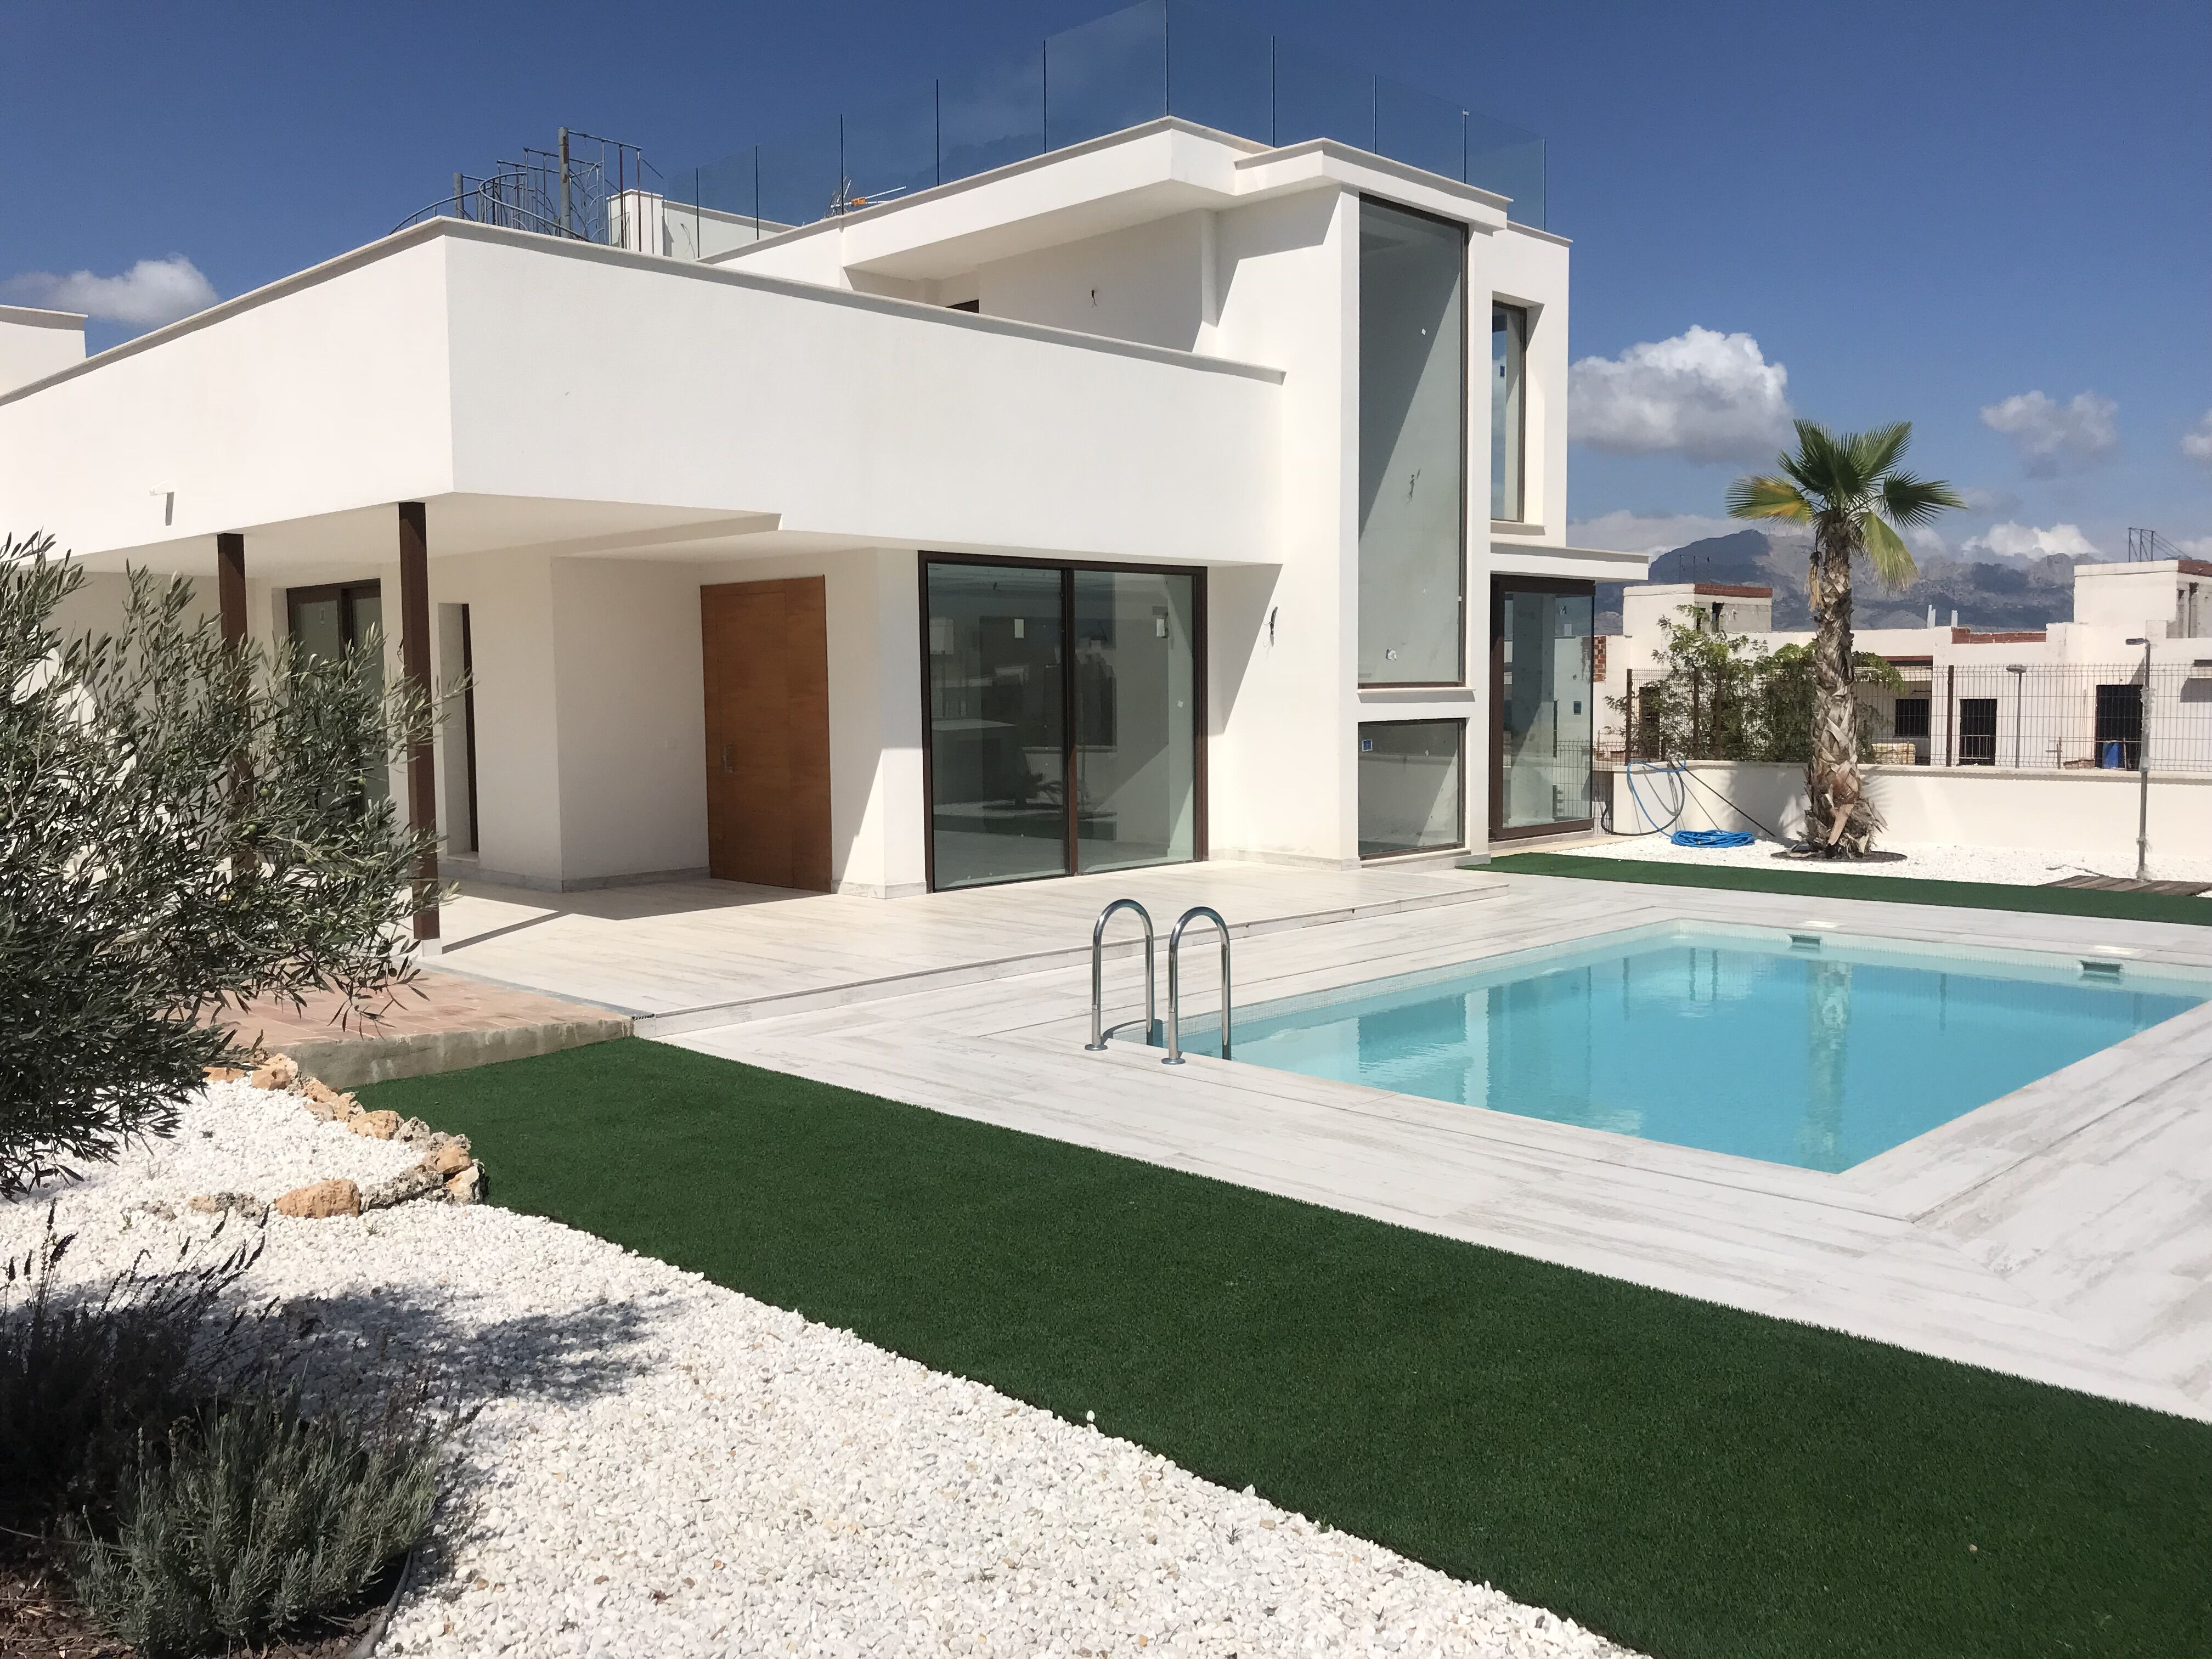 4 bedroom villa For Sale in Polop - Main Image